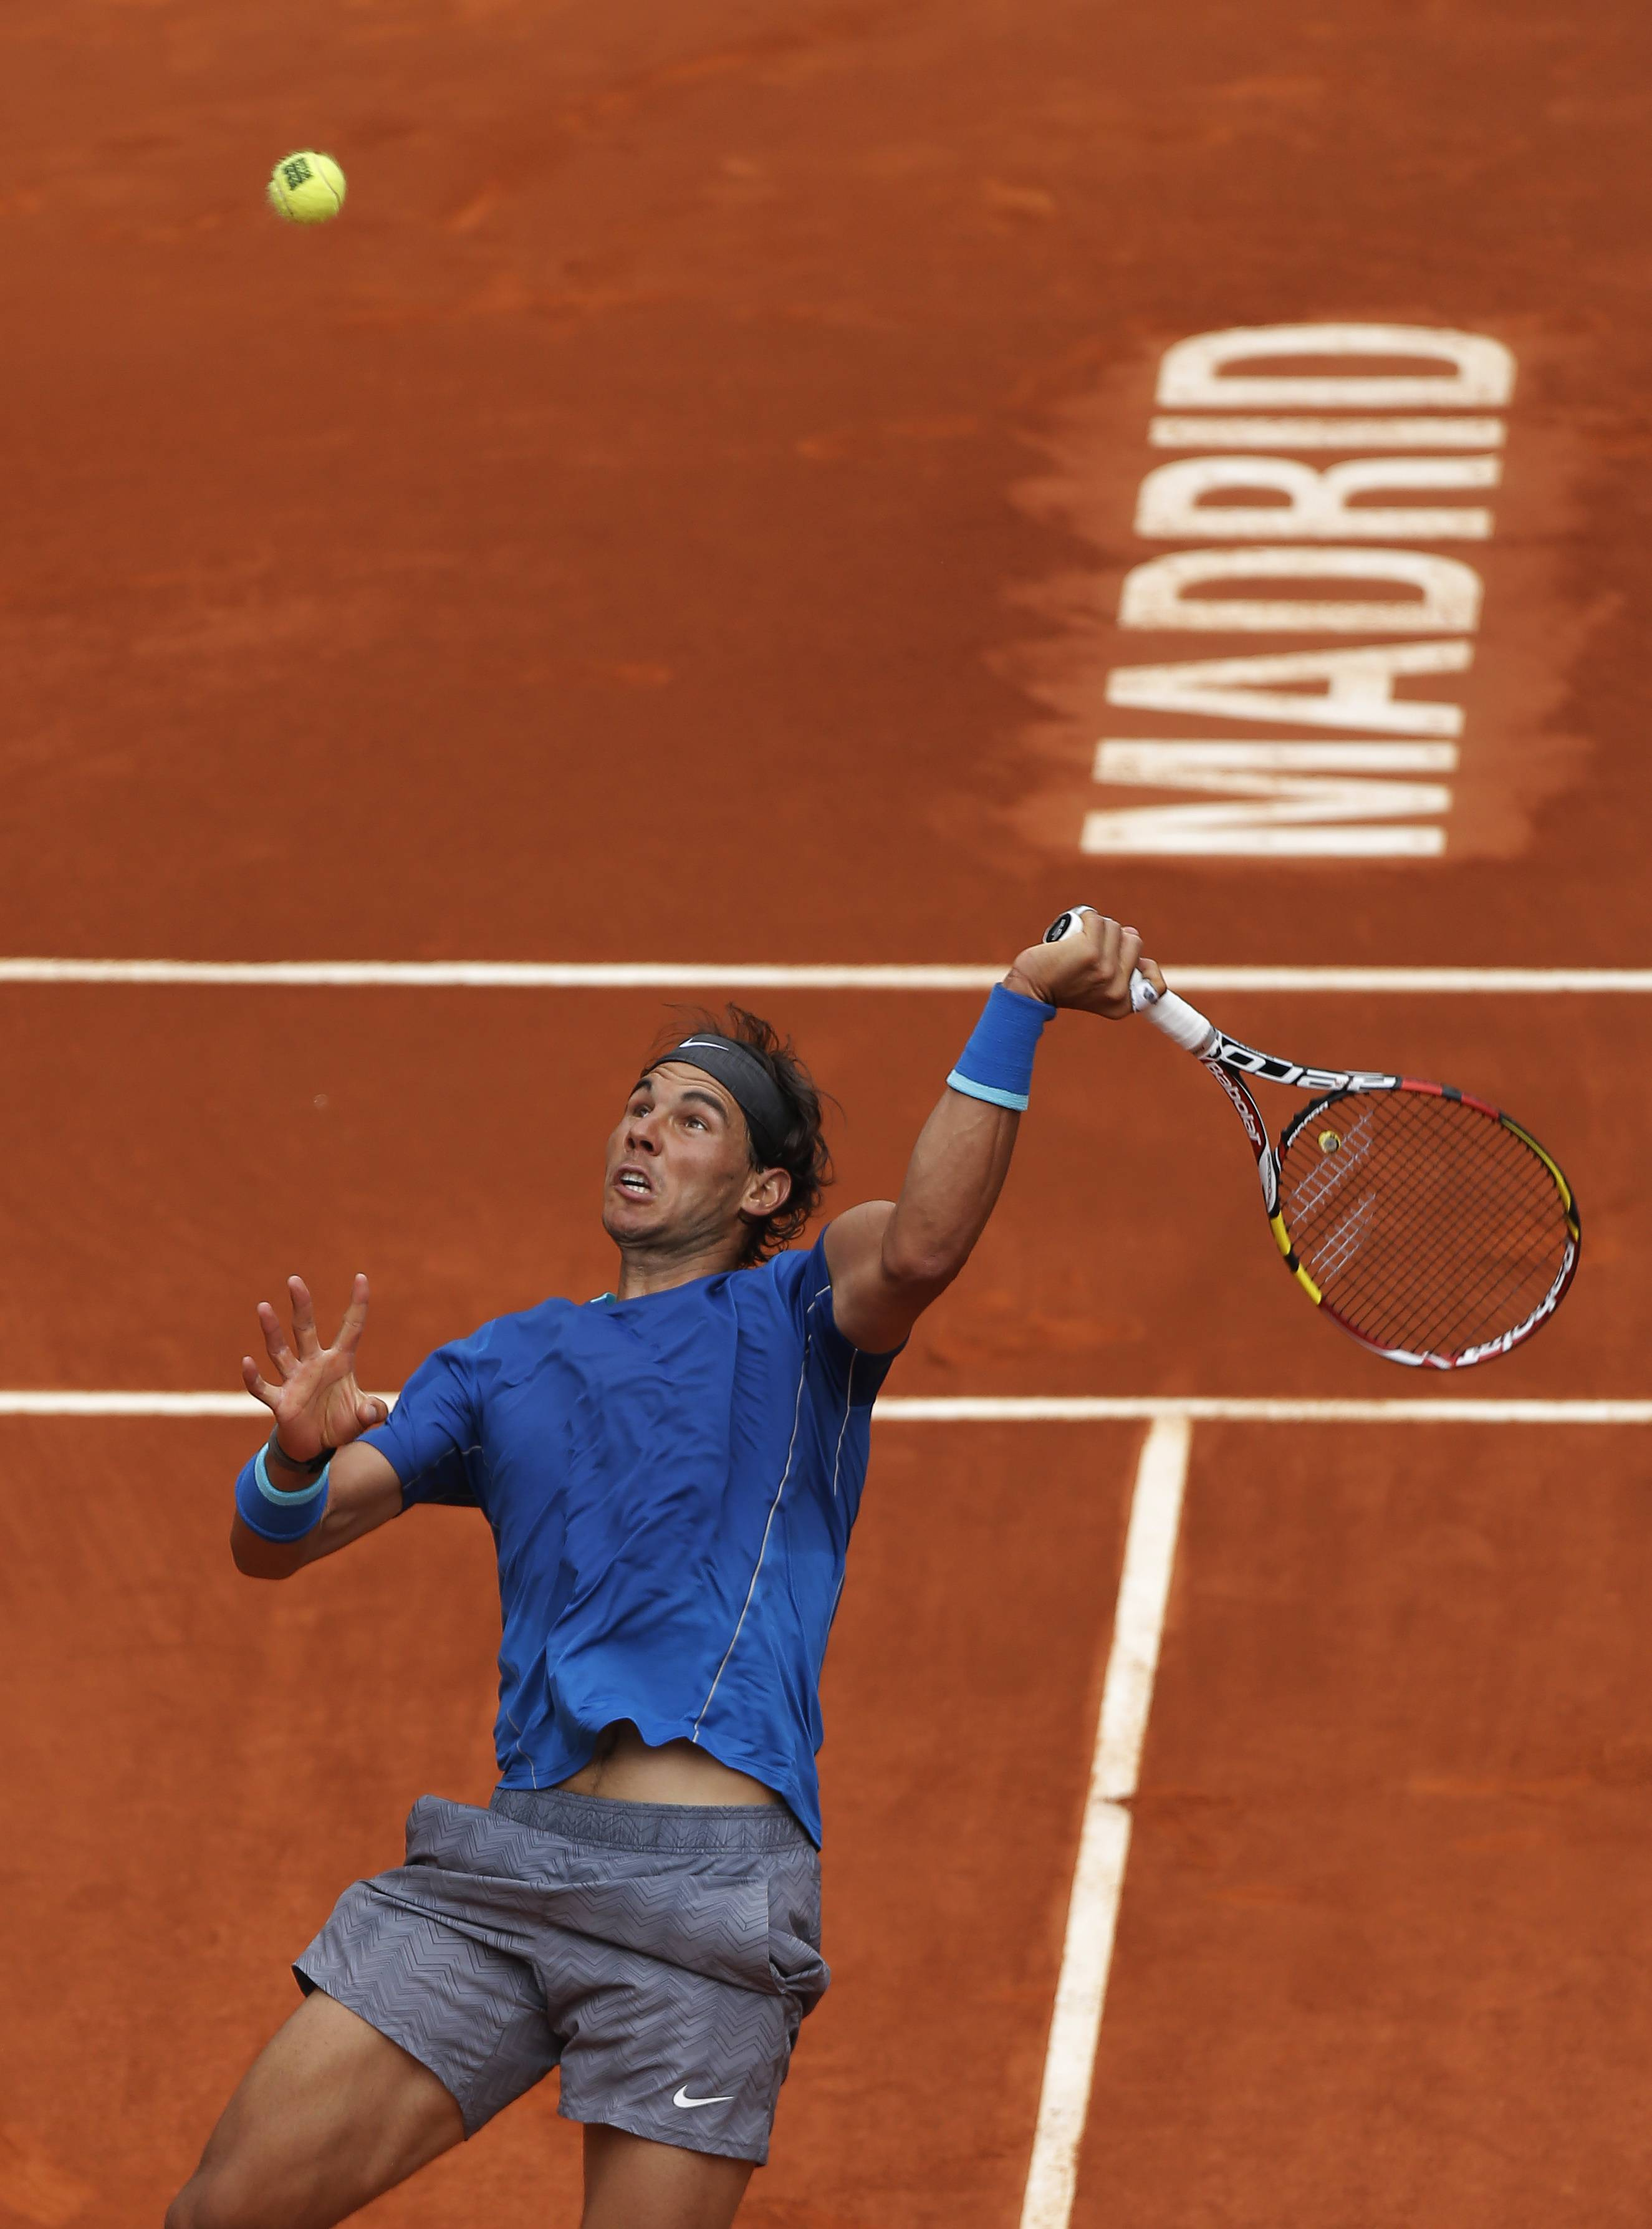 Rafael Nadal from Spain returns the ball during a Madrid Open tennis tournament match against Juan Monaco from Argentina, in Madrid, Spain, Wednesday May 7, 2014.